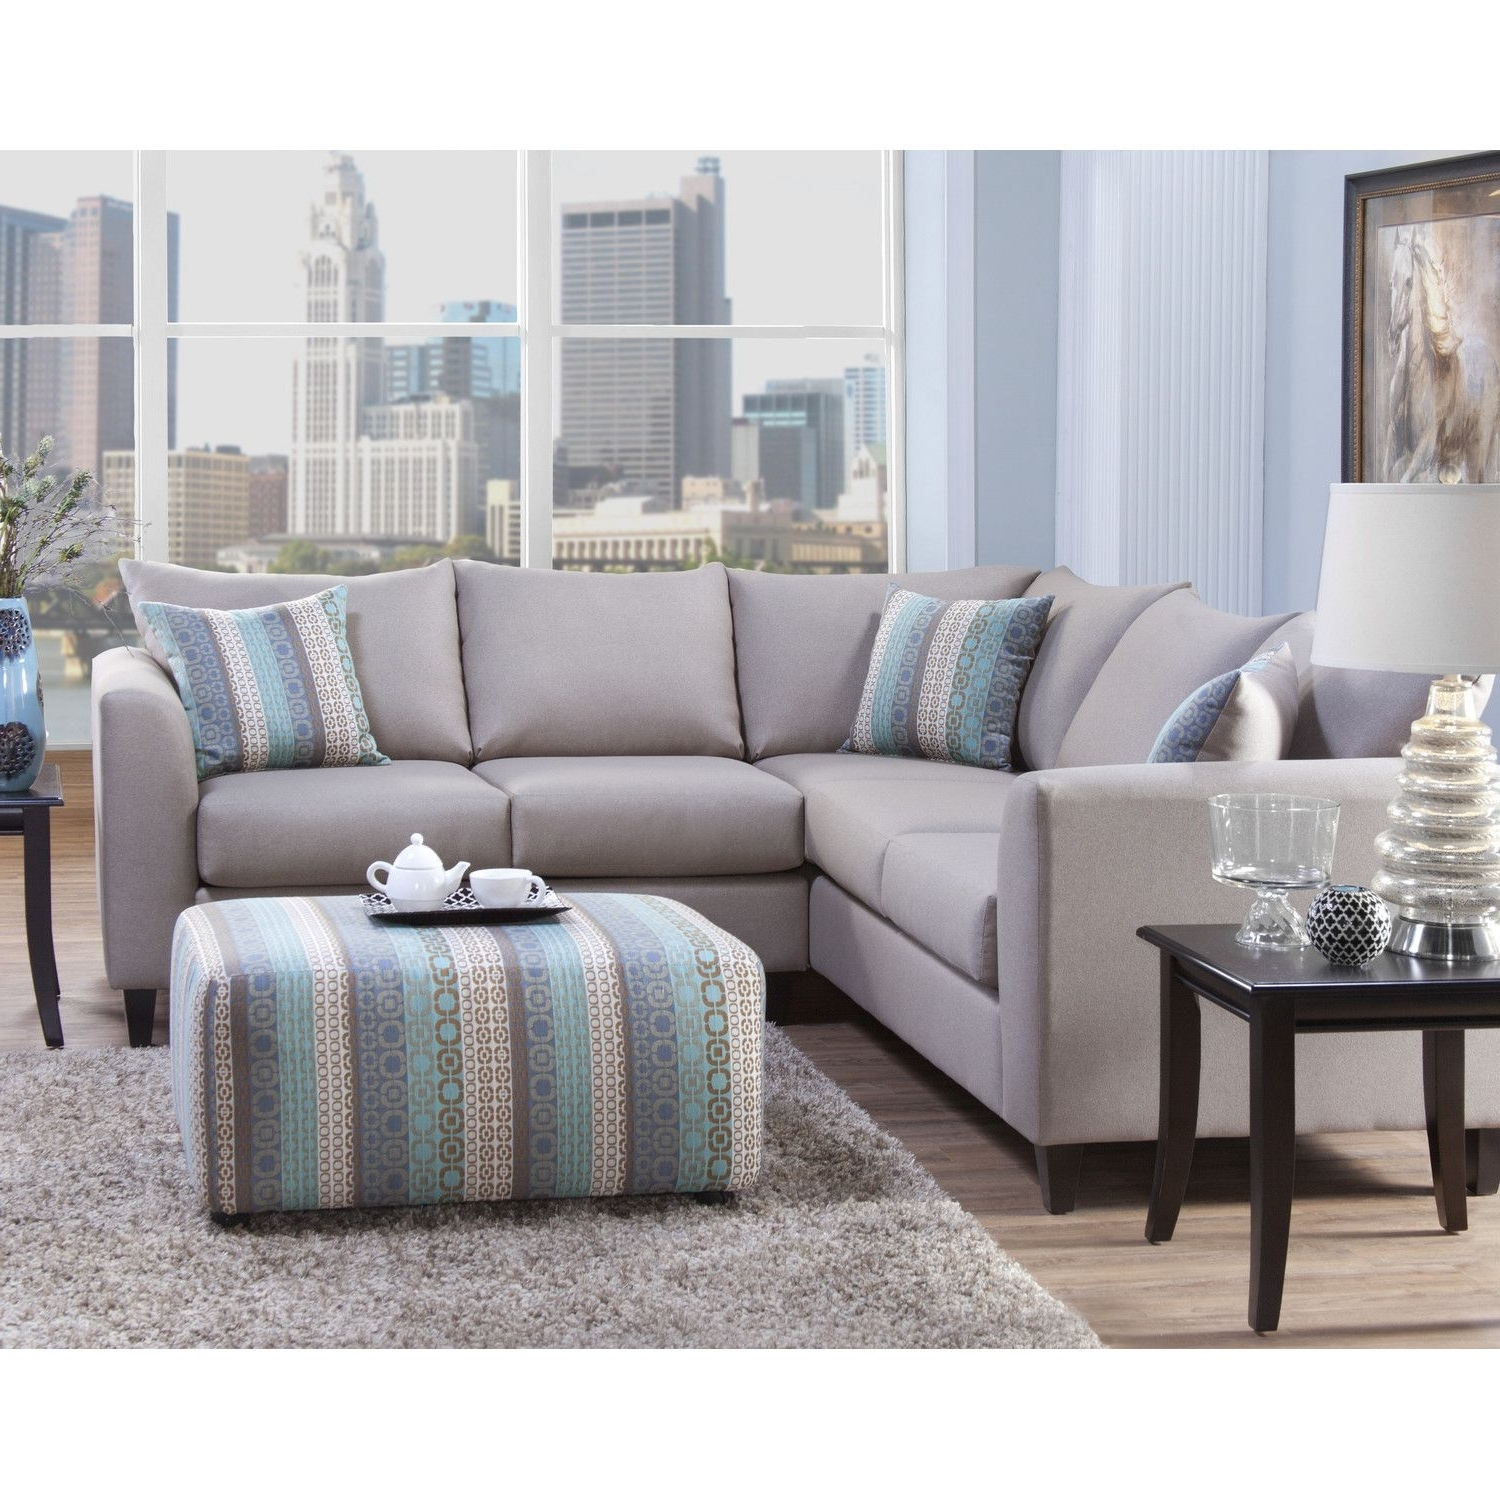 Latest Free Shipping! Shop Wayfair For Serta Upholstery Sectional – Great With Wayfair Sectional Sofas (View 5 of 15)